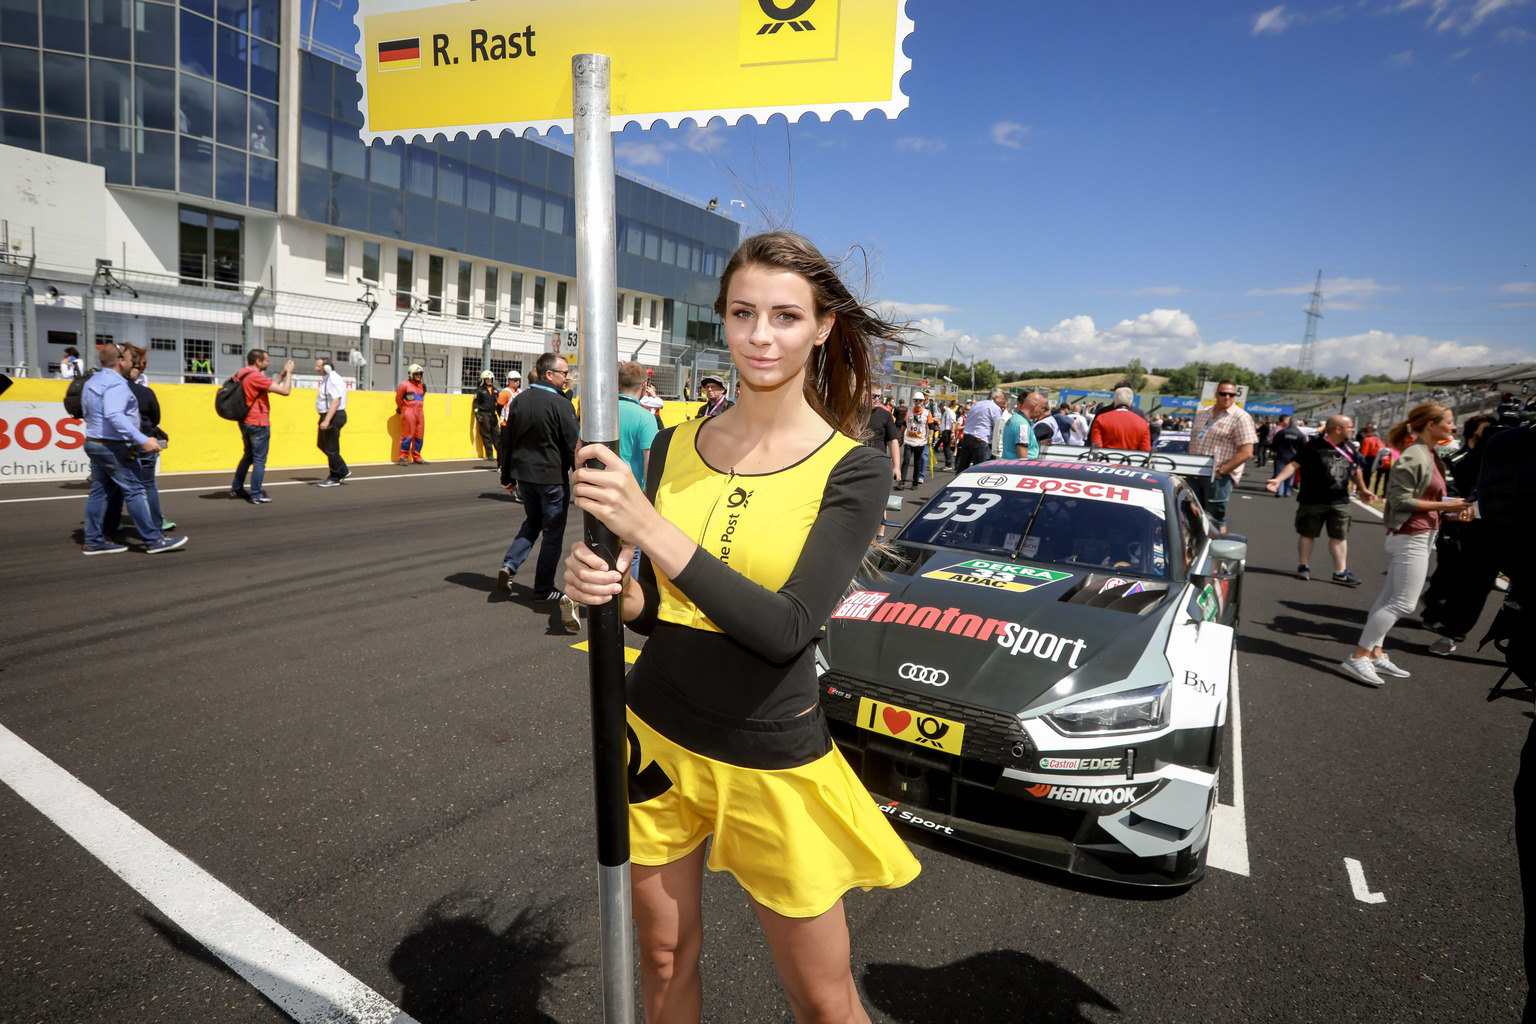 René Rust a pole-ban! - Fotó: DTM Media